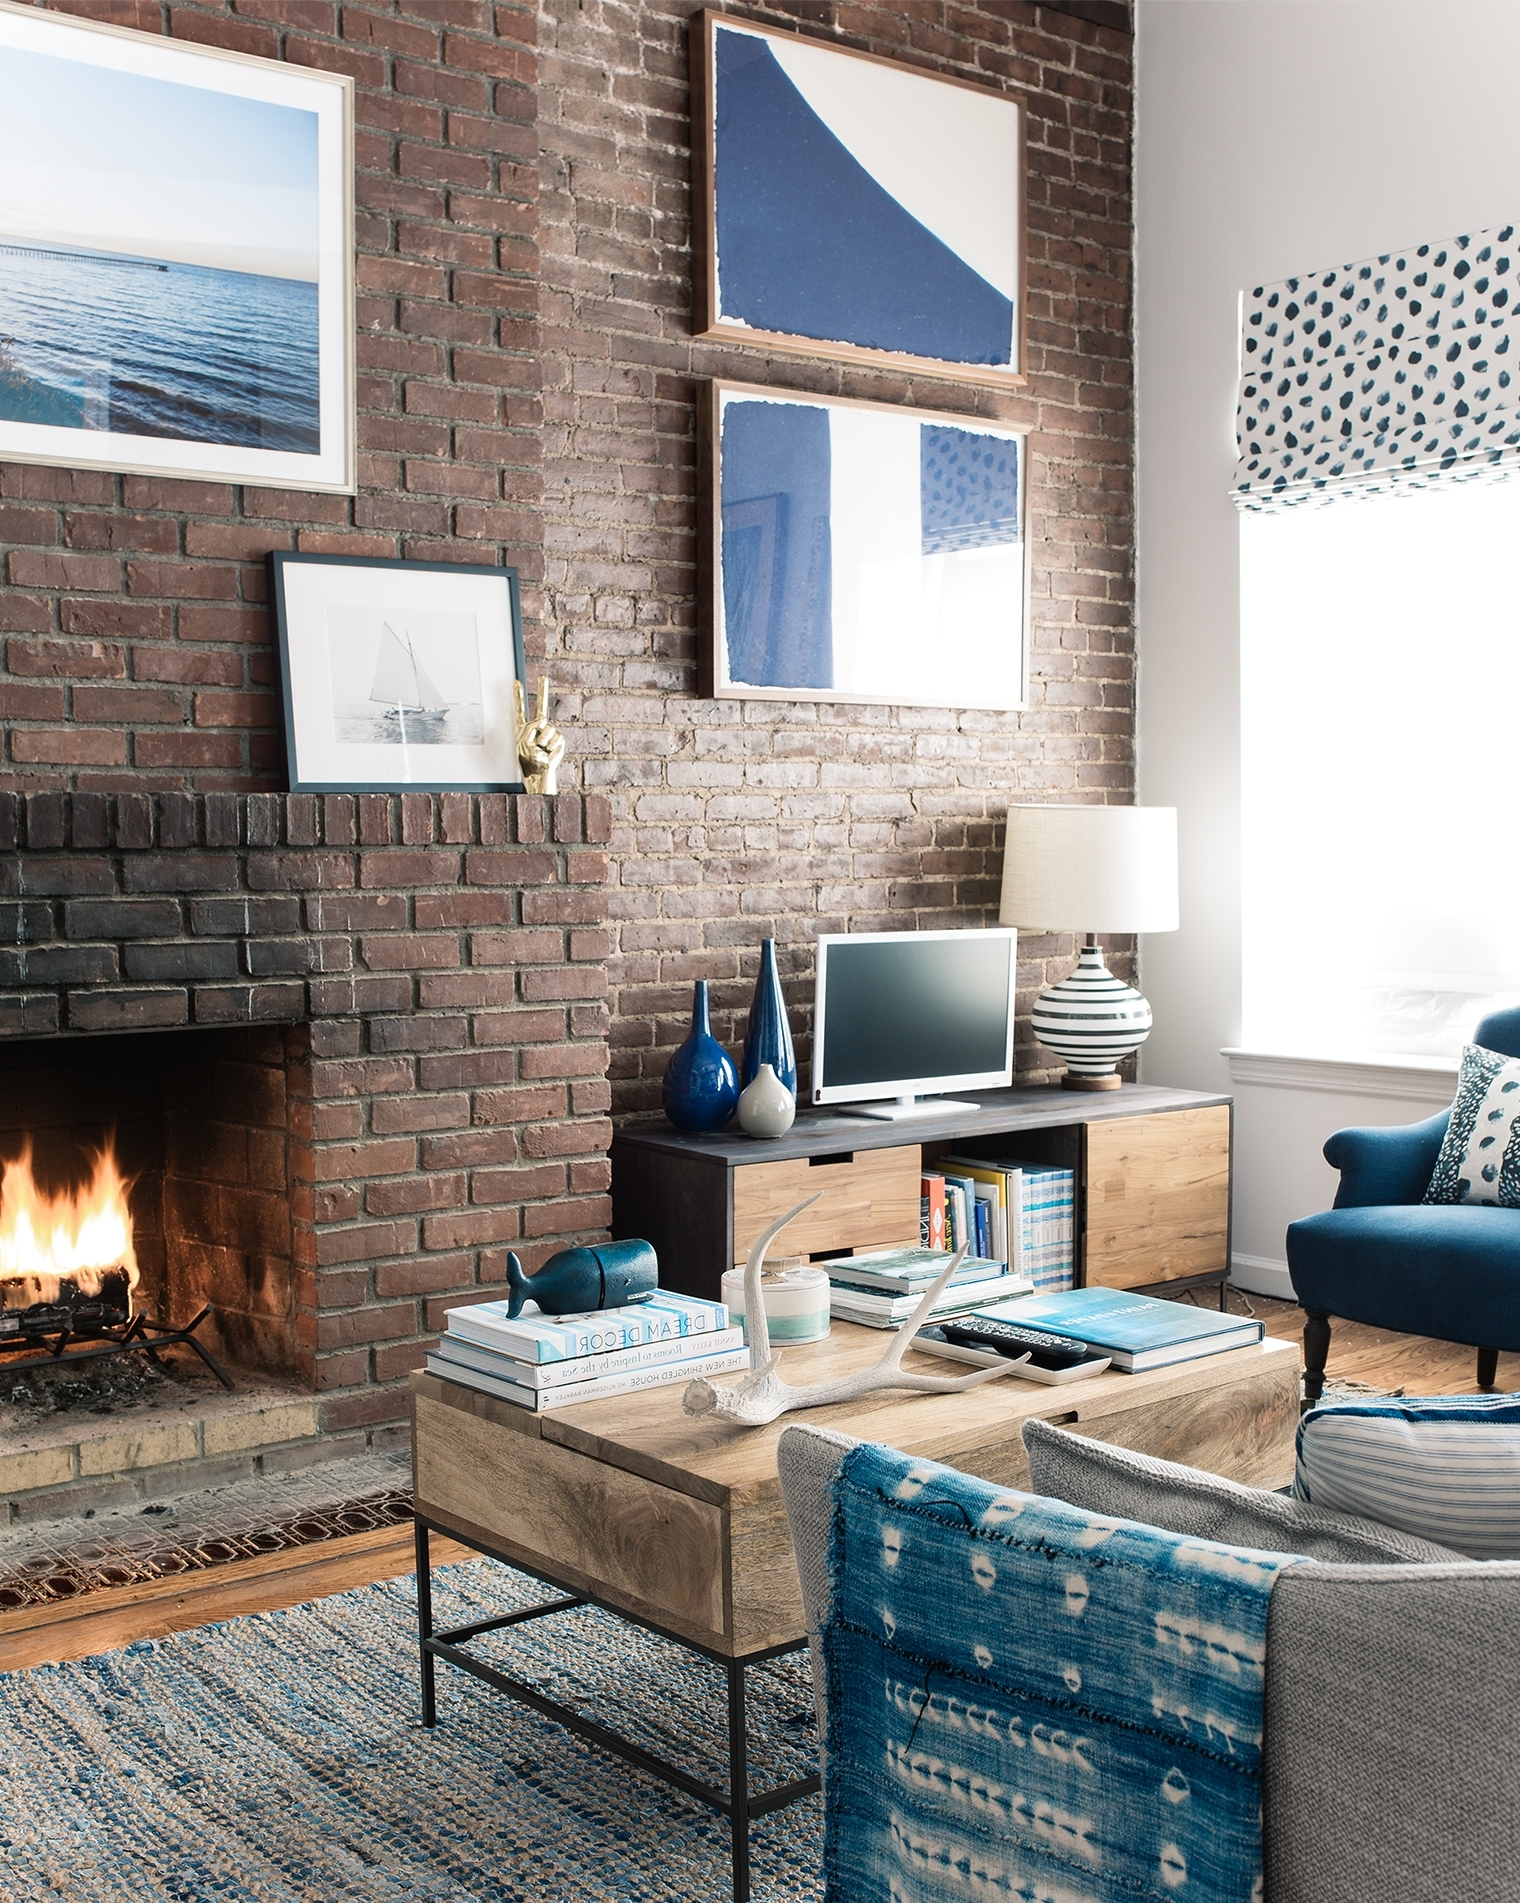 How To Decorate An Nyc Brownstone Apartment Bright Bazaar 30+ Brownstone Living Room Decorating Inspirations